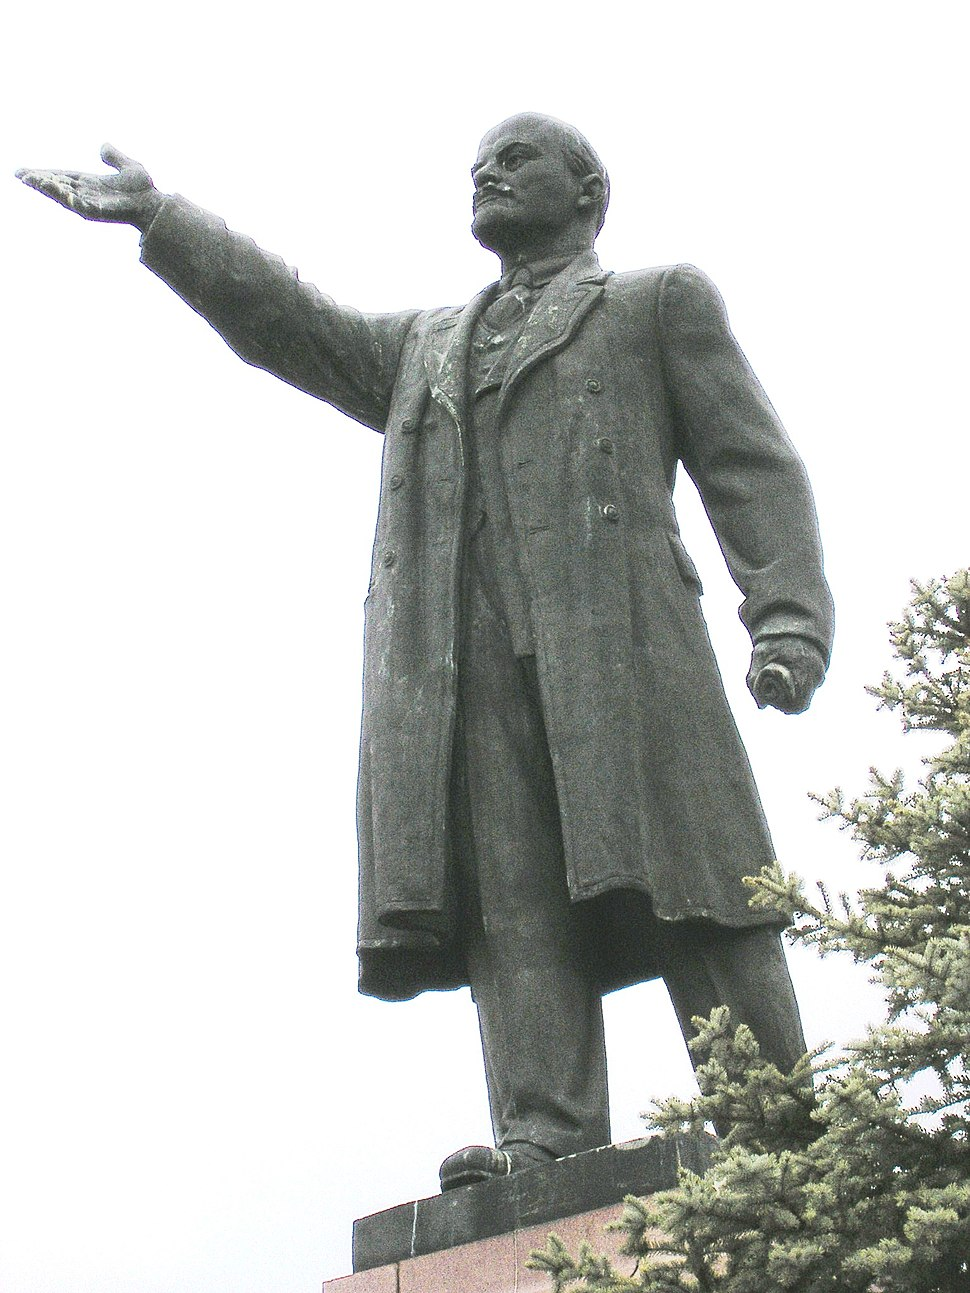 Lenin statue in Kineshma, next to the Volga, close-up view